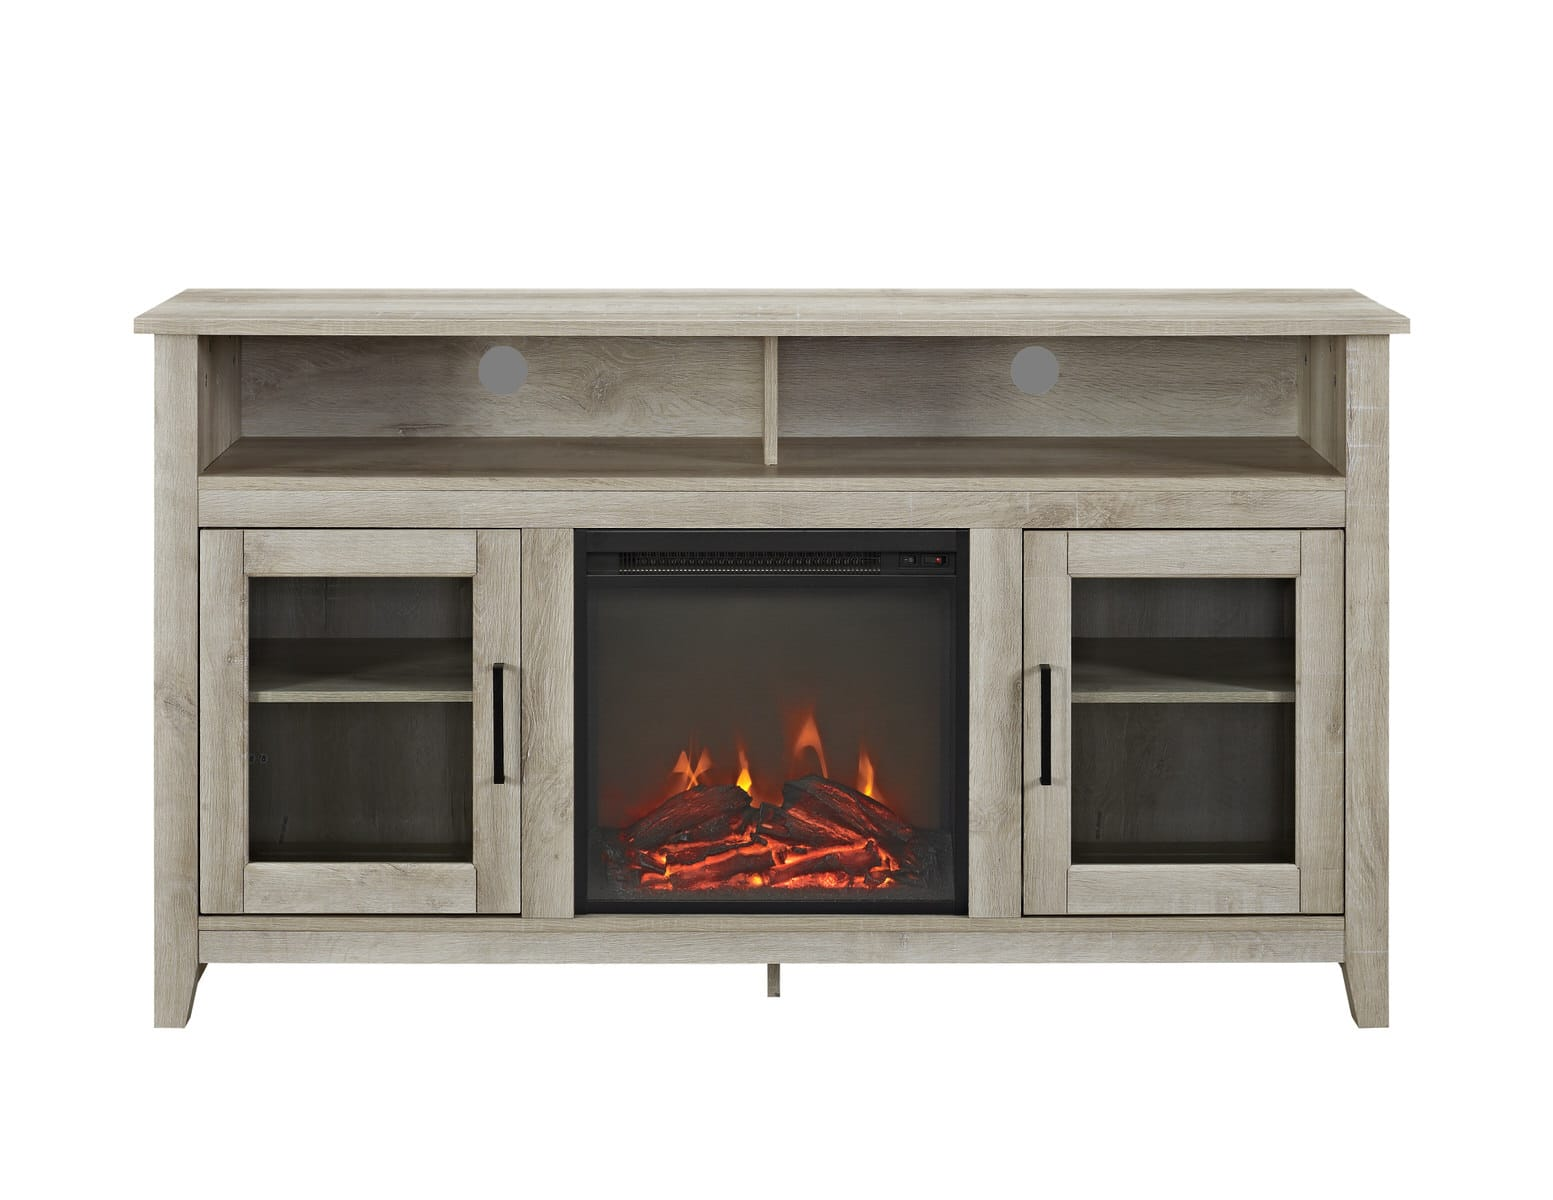 Highboy 58 Inch Wood Fireplace Media TV Stand Console   White Oak By Walker  Edison